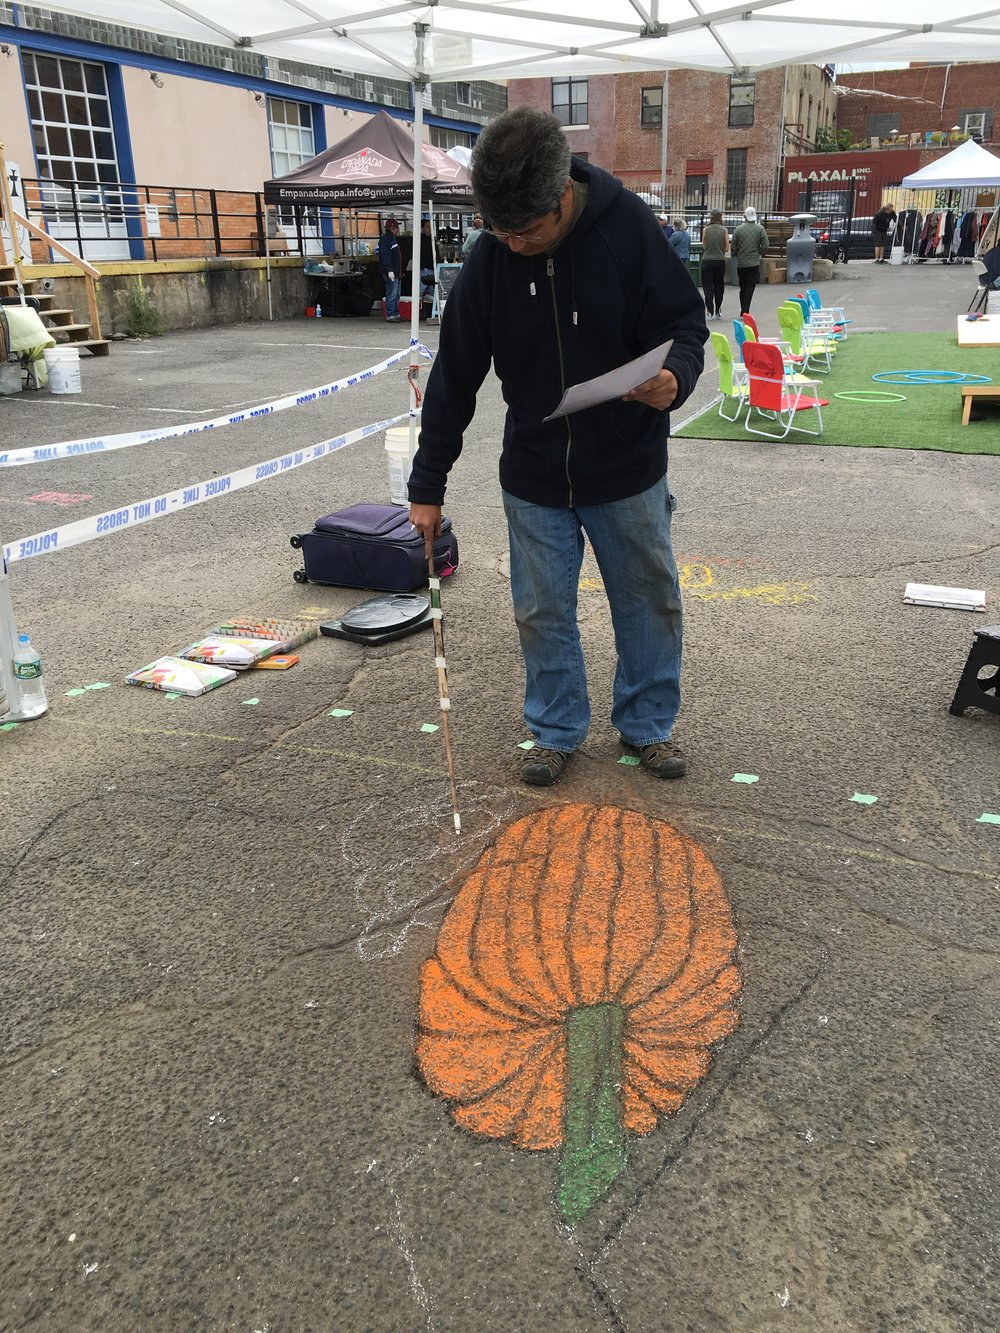 3D chalk art in the early going...  We are big fans of creating our designs live and by hand.  For us the art is in the full execution of the work especially for live events as a tool to bring the public into the creation of the art itself.